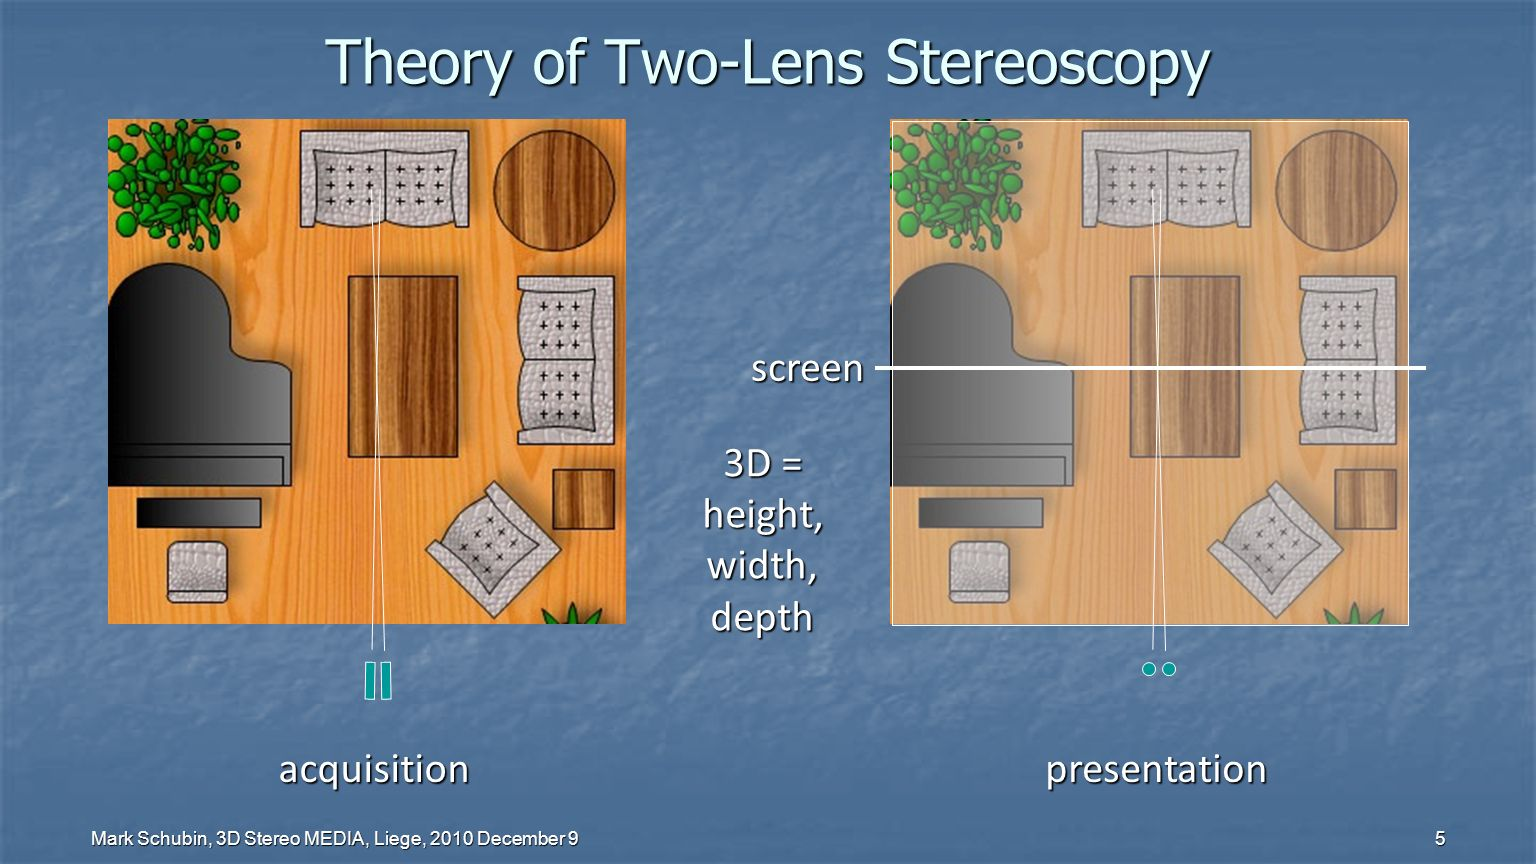 Mark Schubin, 3D Stereo MEDIA, Liege, 2010 December 9 5 Theory of Two-Lens Stereoscopy acquisitionpresentation 3D = height,width,depth screen